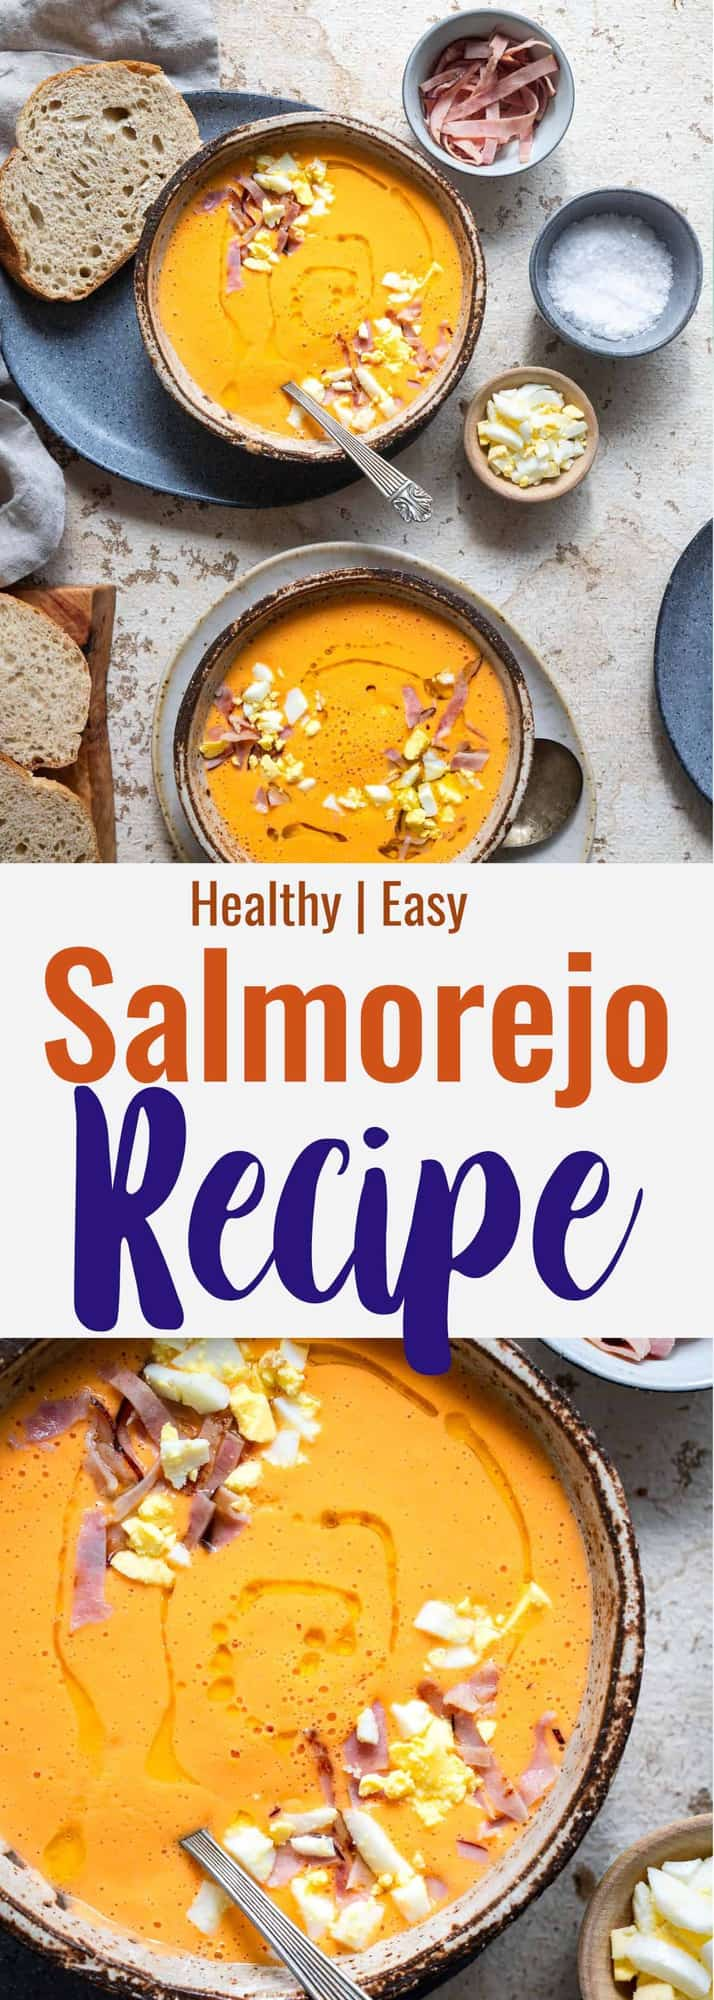 Salmorejo Recipe - Salmorejo is a classic cold tomato soup from Córdoba, Spain. It's made of simple, healthy and fresh ingredients and is so flavorful! | #Foodfaithfitness | #Healthy #Sugarfree #Soup #Dairyfree